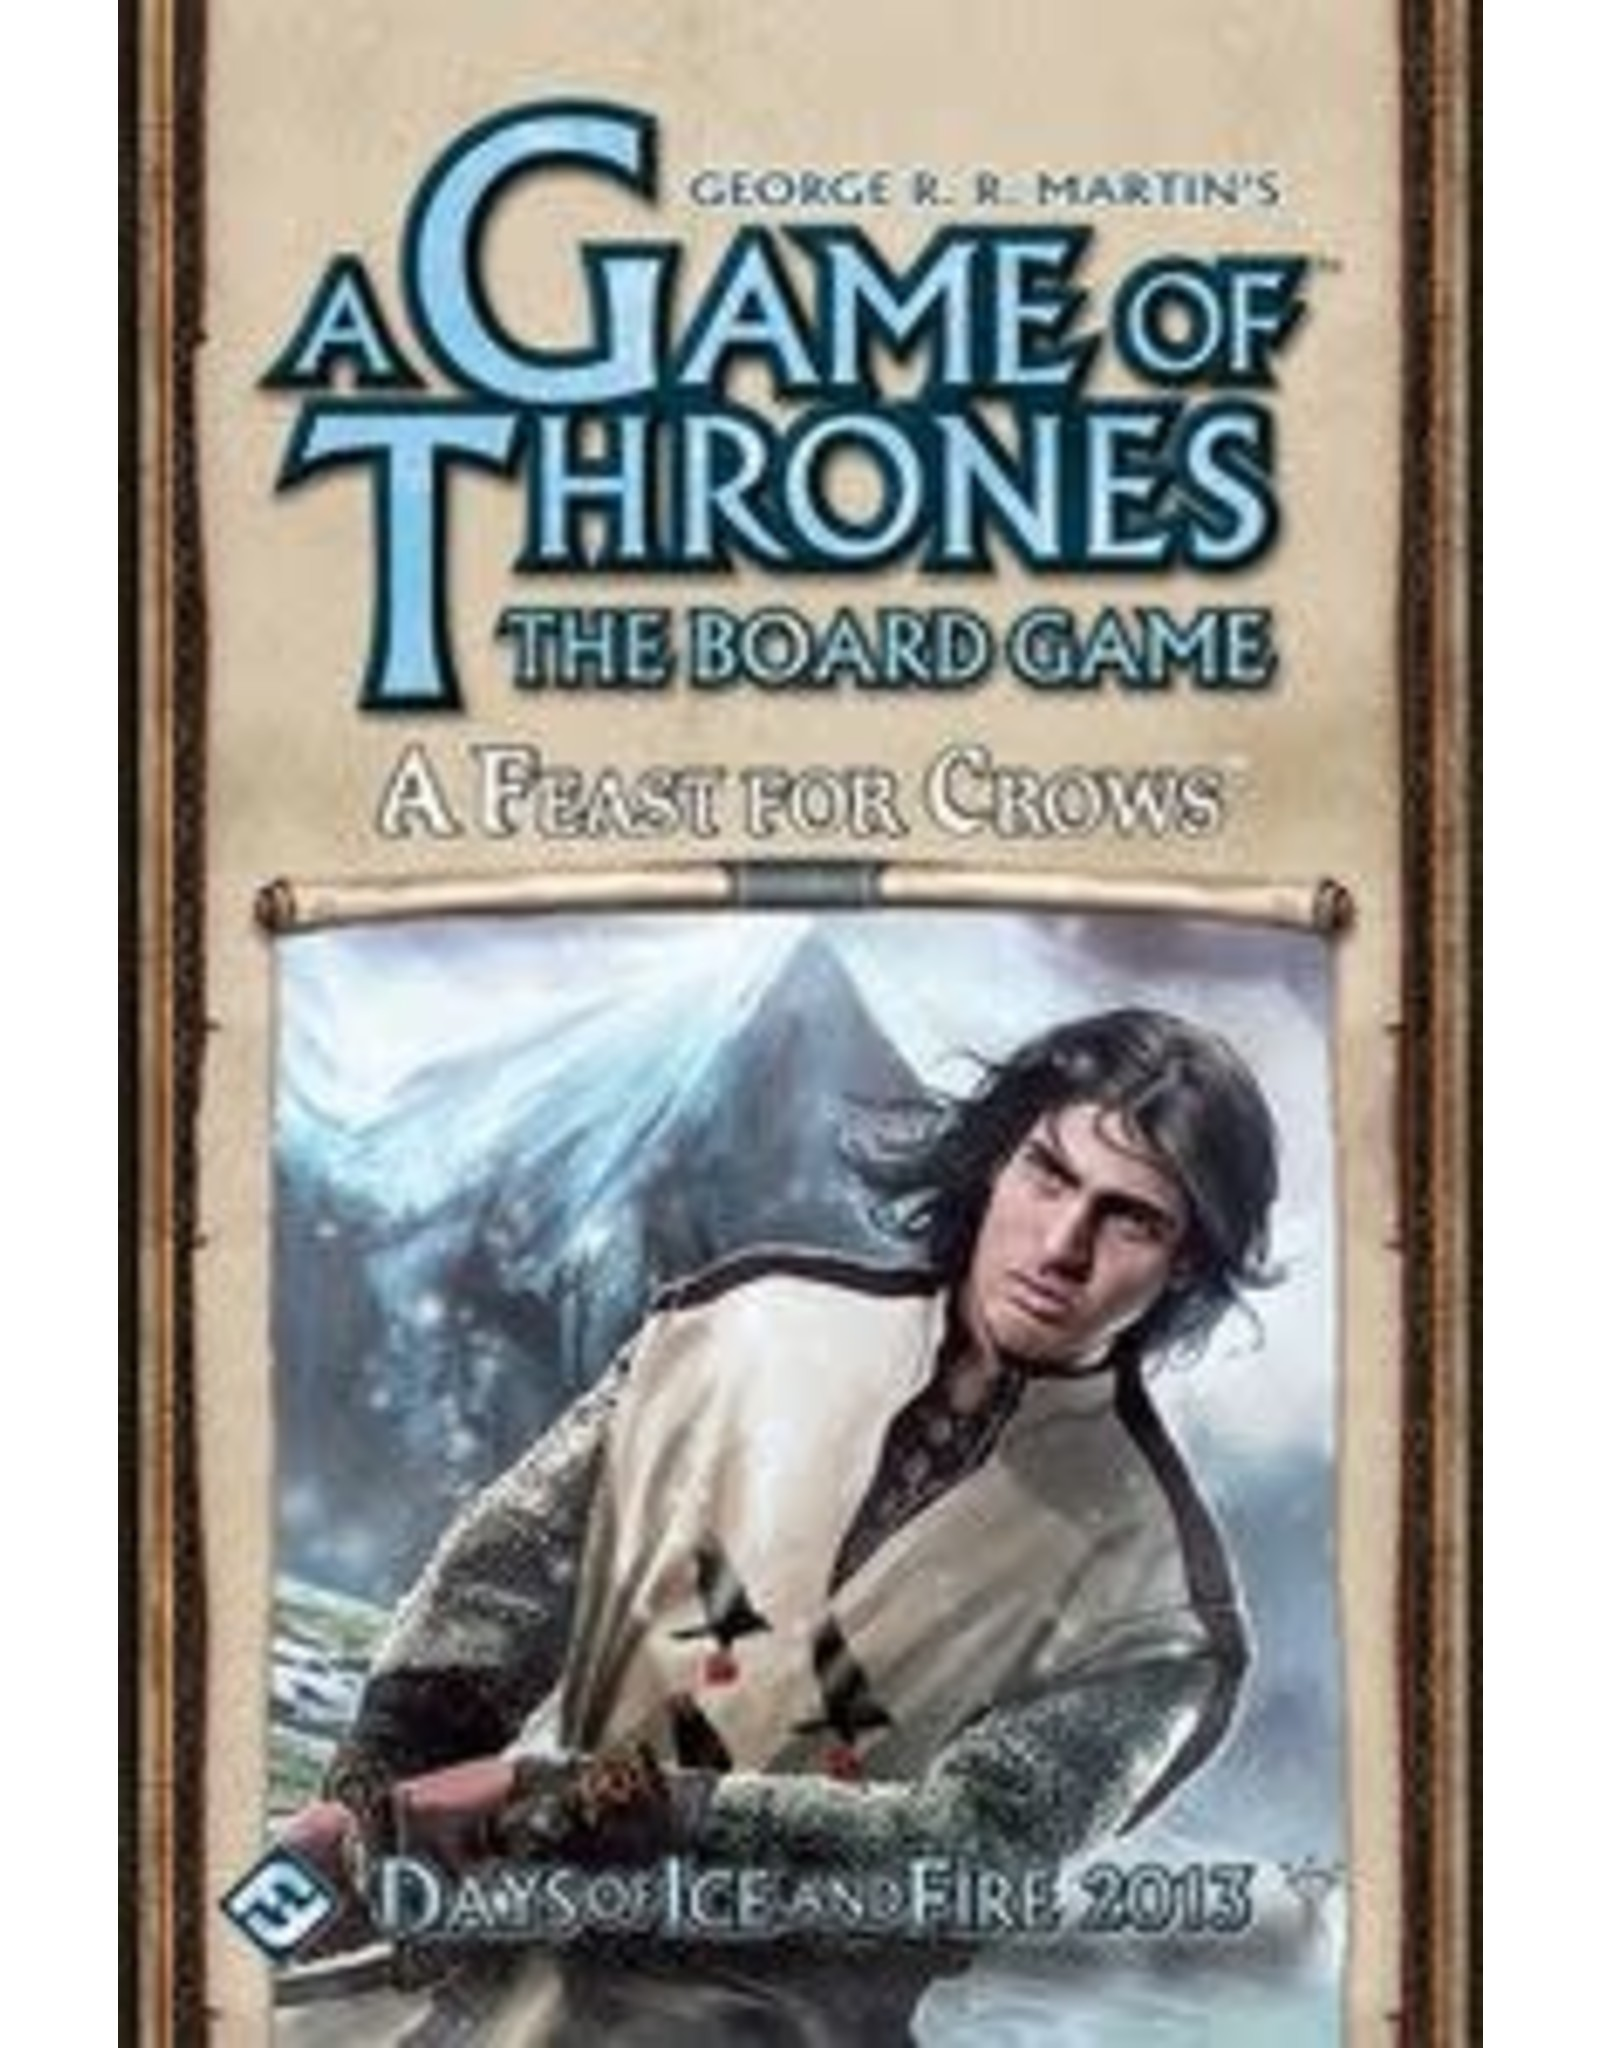 Game of Thrones Board Game 2nd Edition: A Feast for Crows Expansion